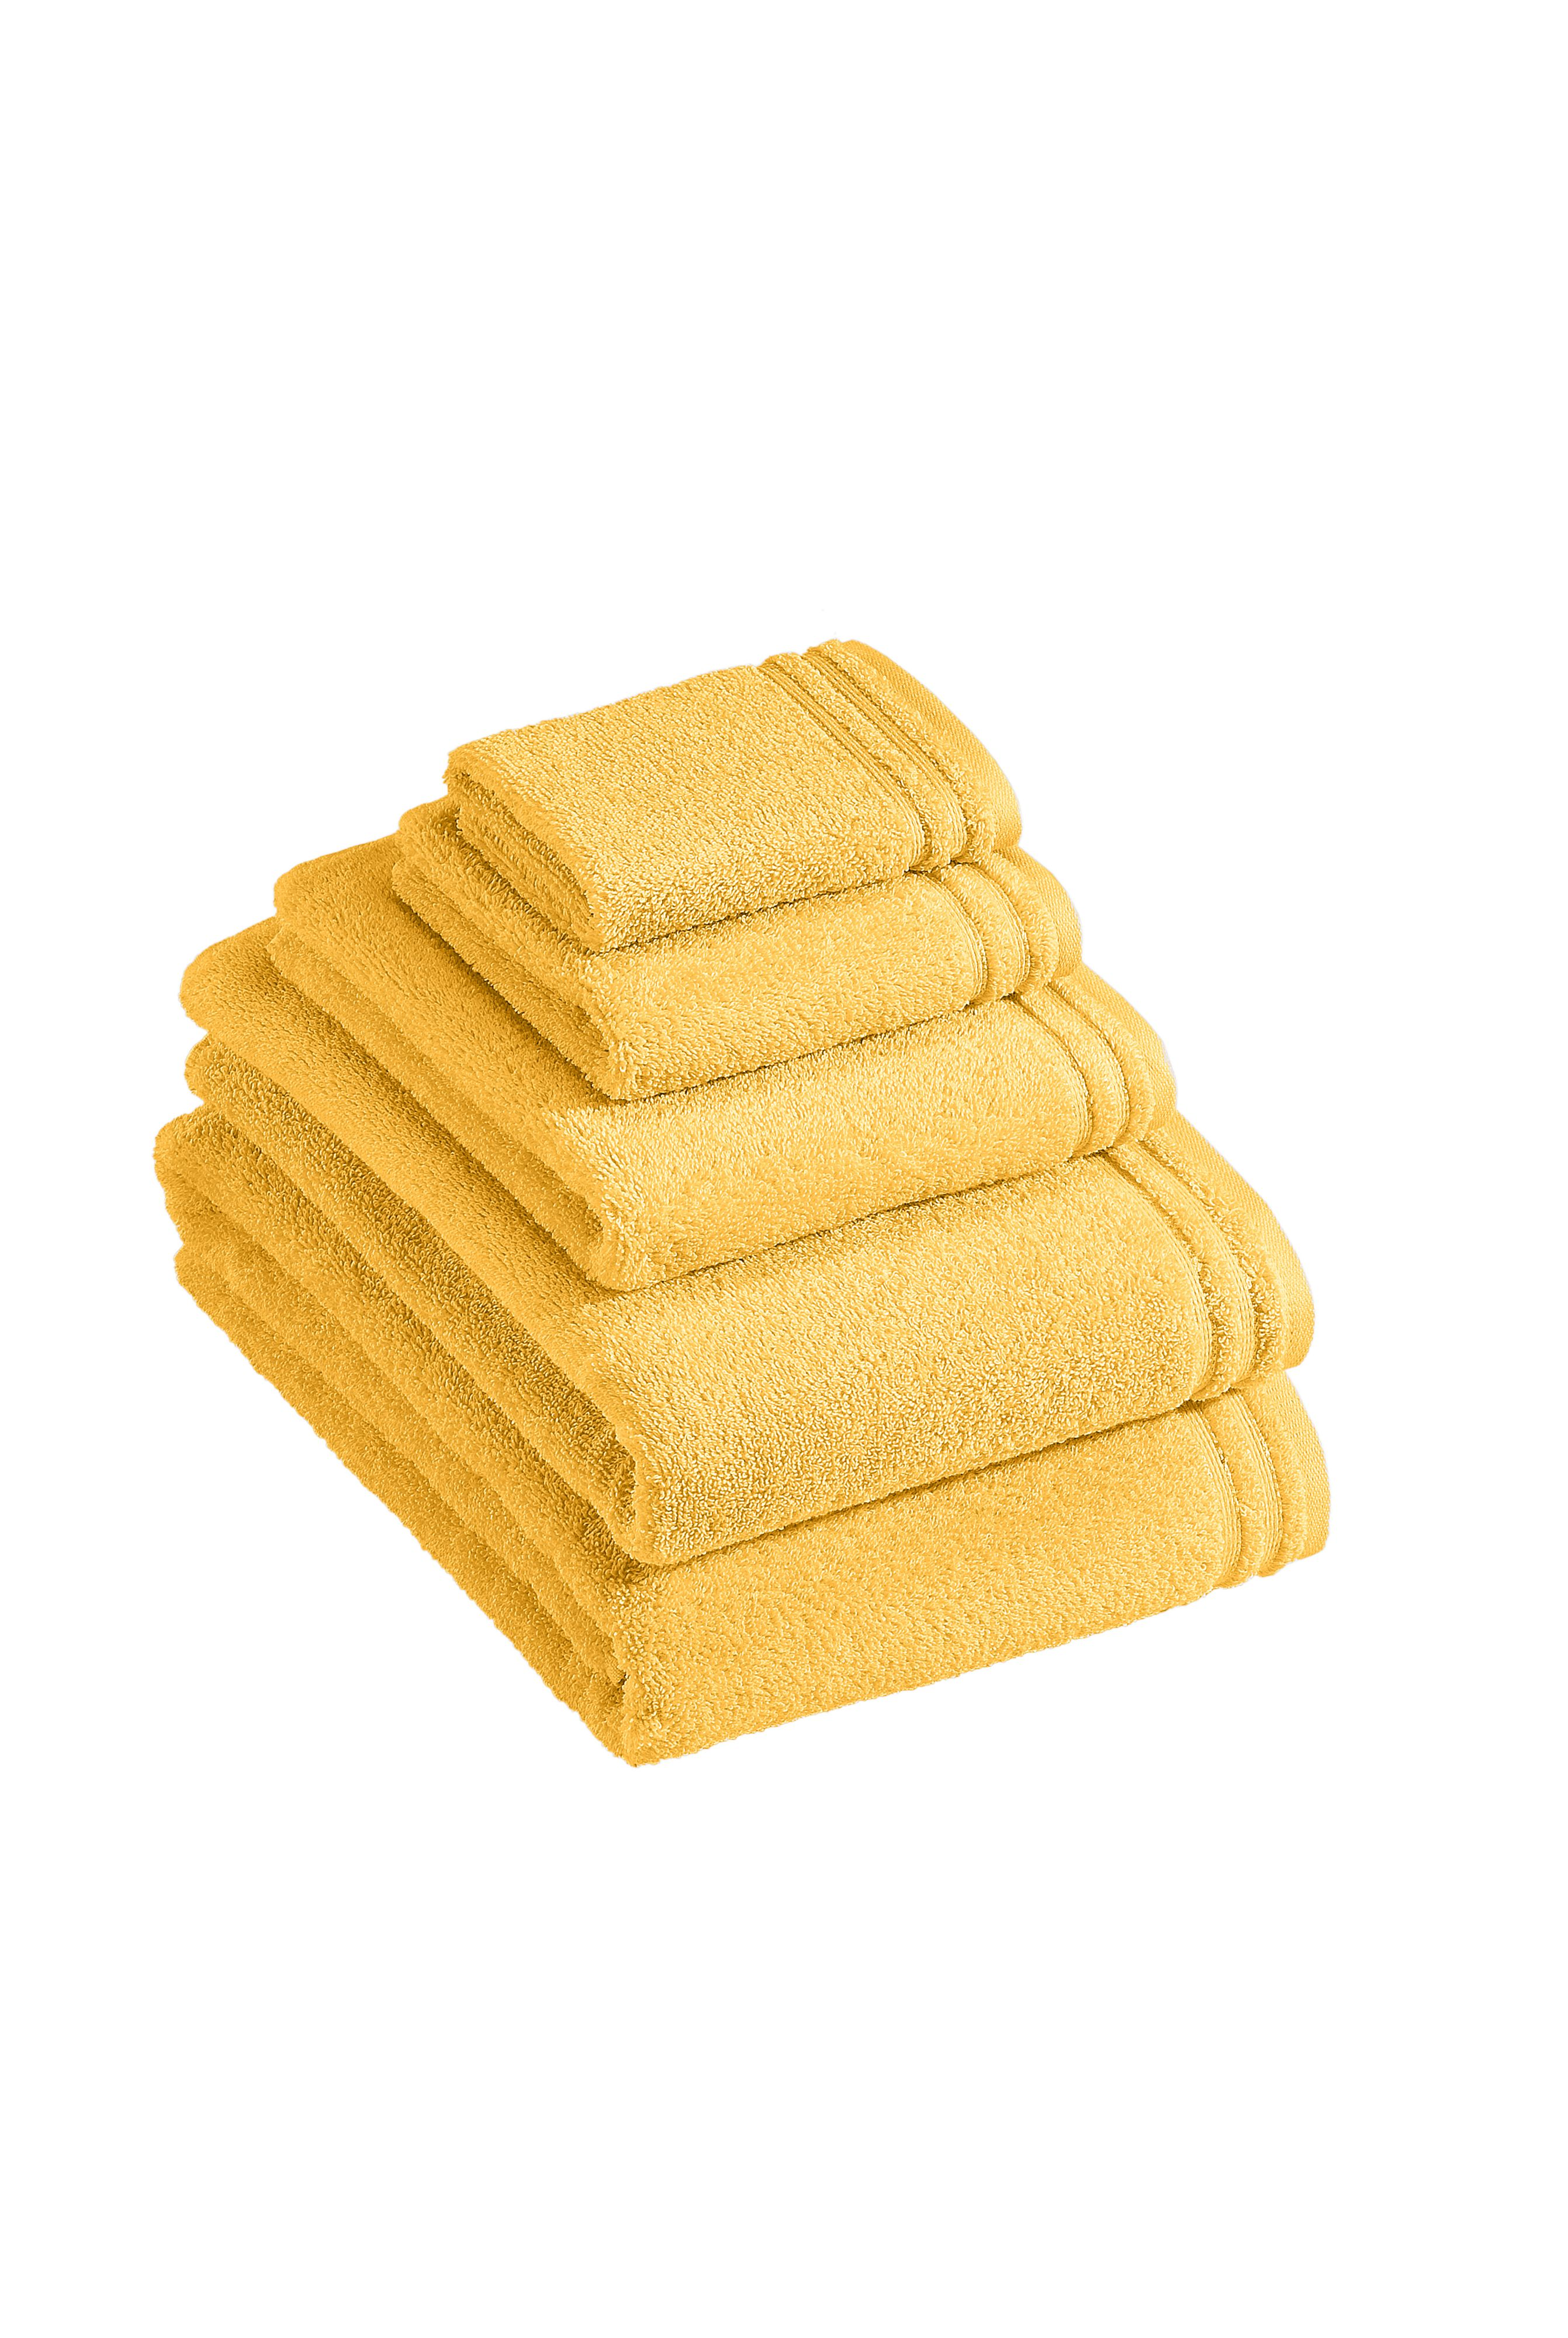 Calypso Feeling towel range in sunflower